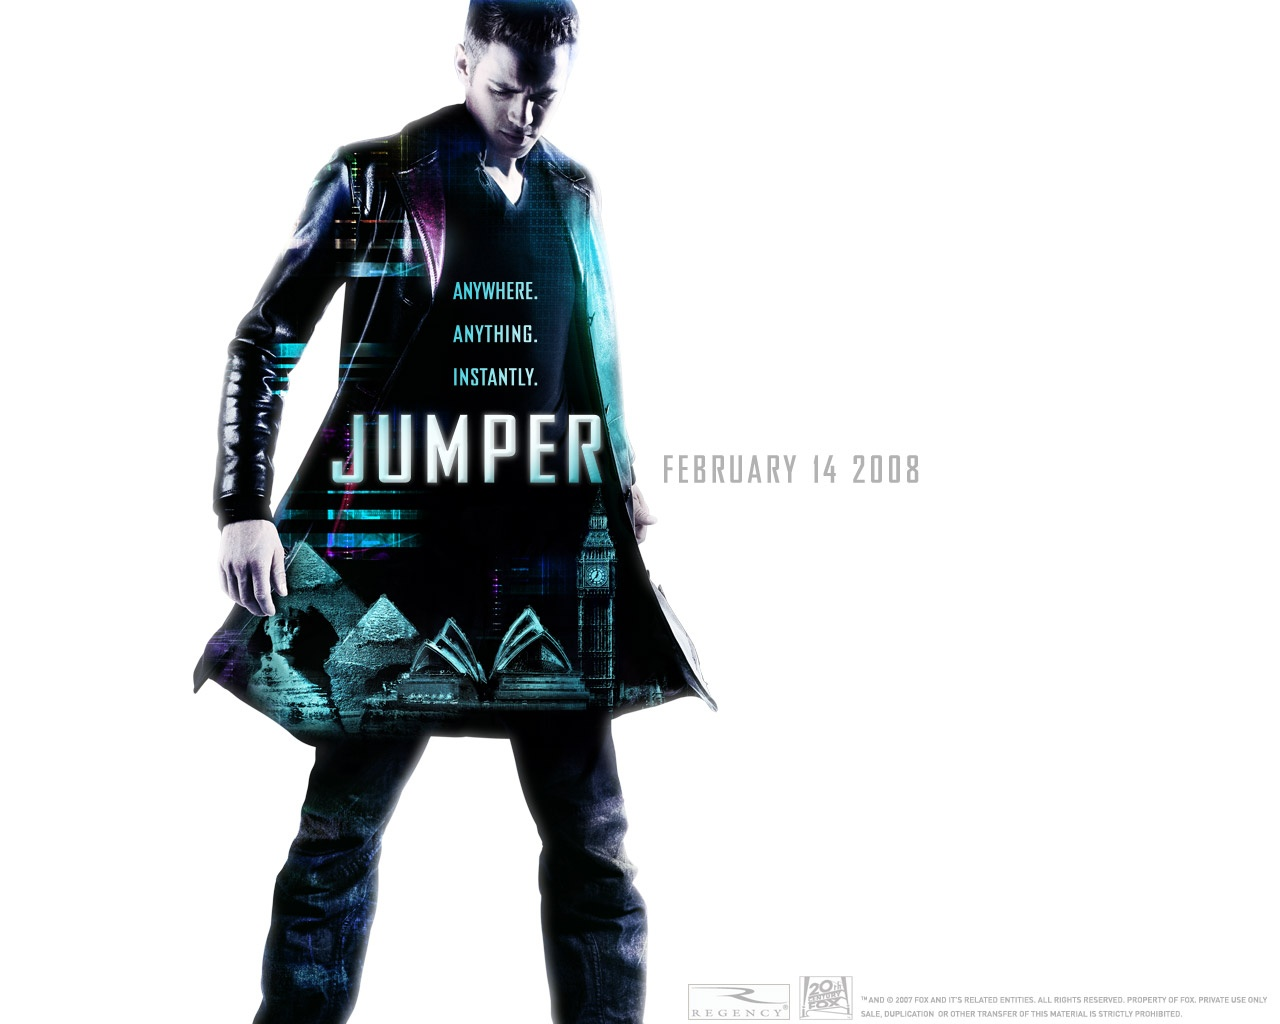 Jumper The Movie Poster